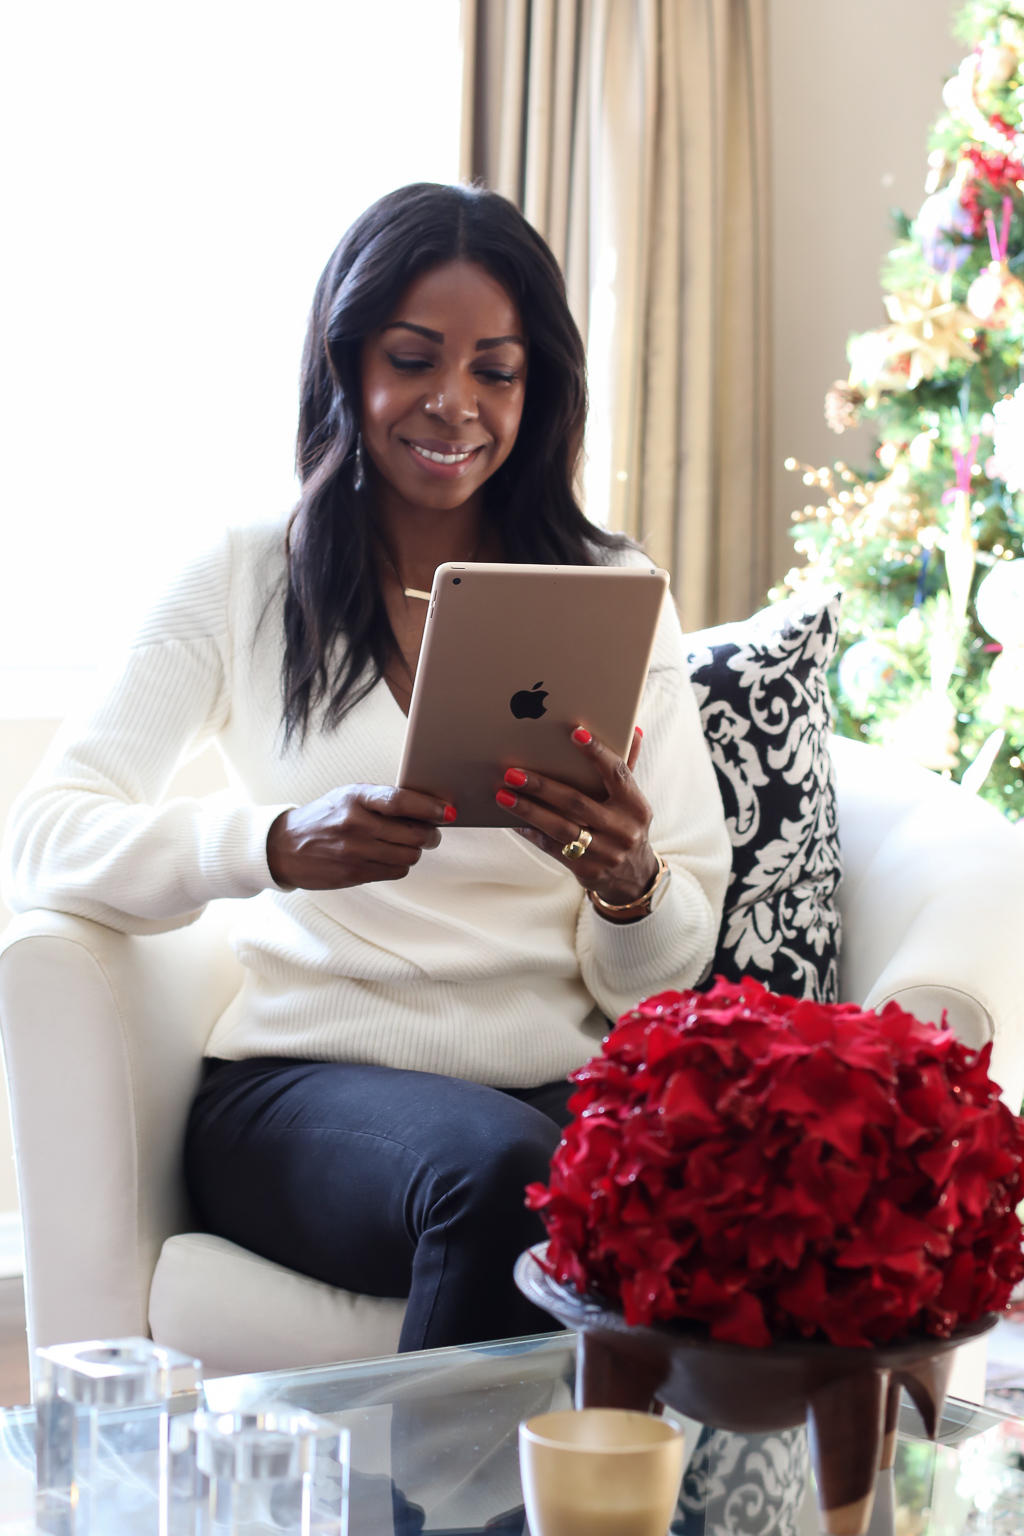 Best Tips For Saving Money This Season | Last minute holiday shopping can be a killer. Here are my tips to help you avoid the stress, including the shopping wonder that is Retail Me Not Canada